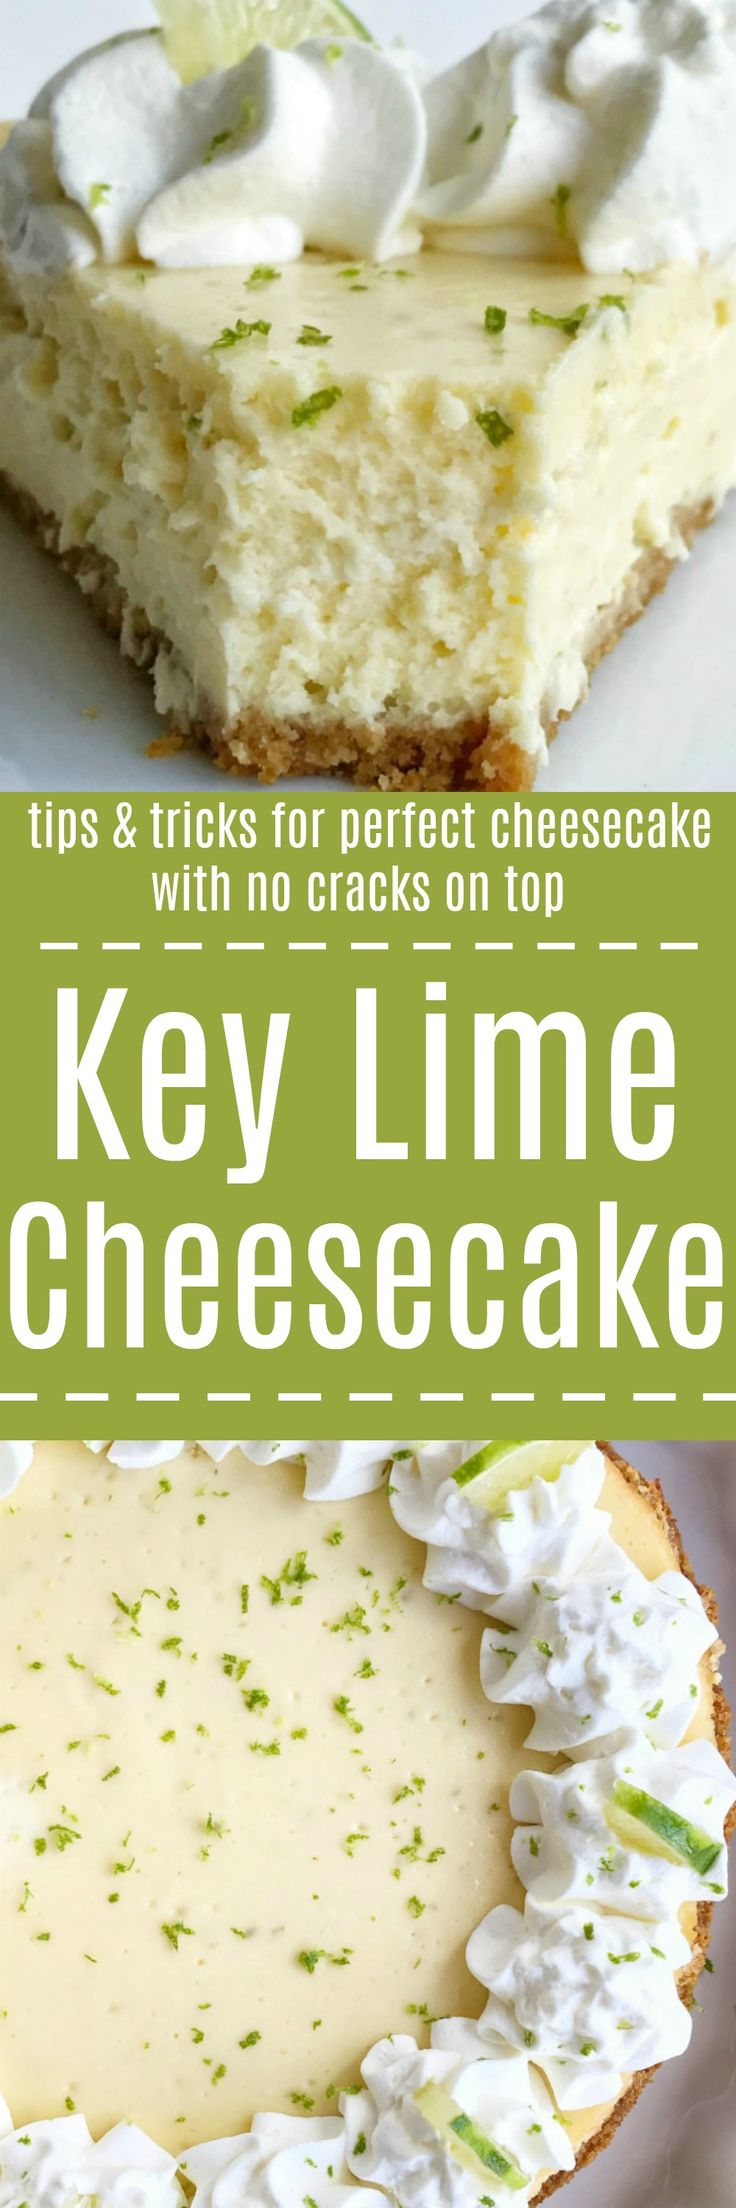 The most perfect and the best key lime cheesecake ever! Graham cracker crust with a creamy and smooth key lime cheesecake filling, and topped with sweetened whipped cream. Tips & tricks on how to get no cracks on the top of the cheesecake.